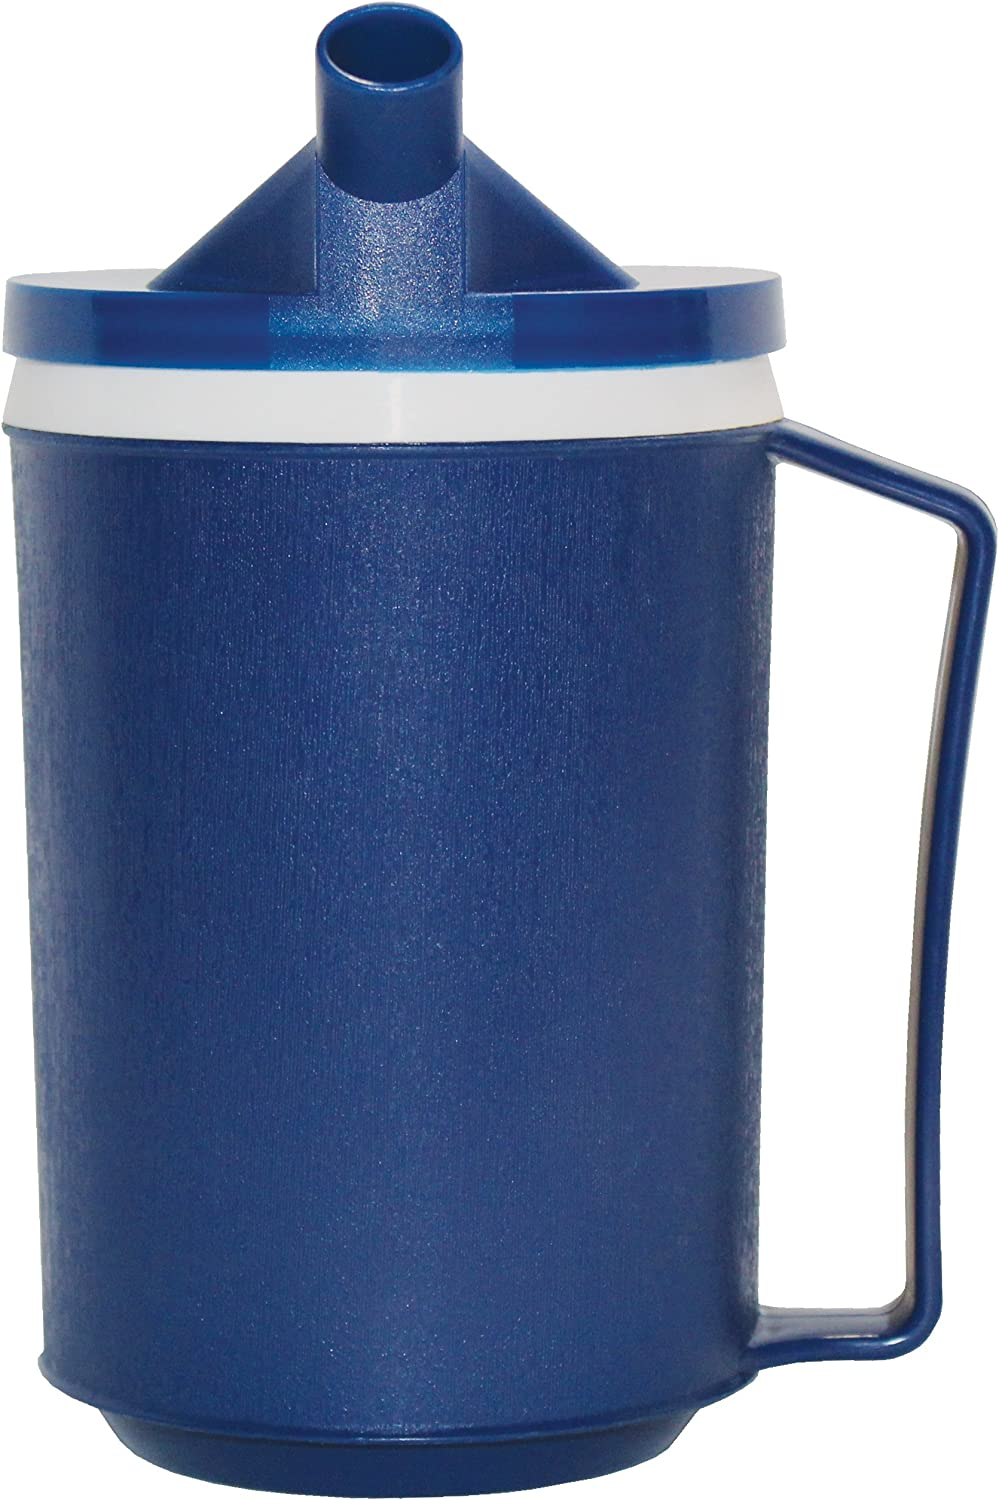 Insulated Mug with 12oz Oklahoma City Mall Be super welcome Lid Snorkel